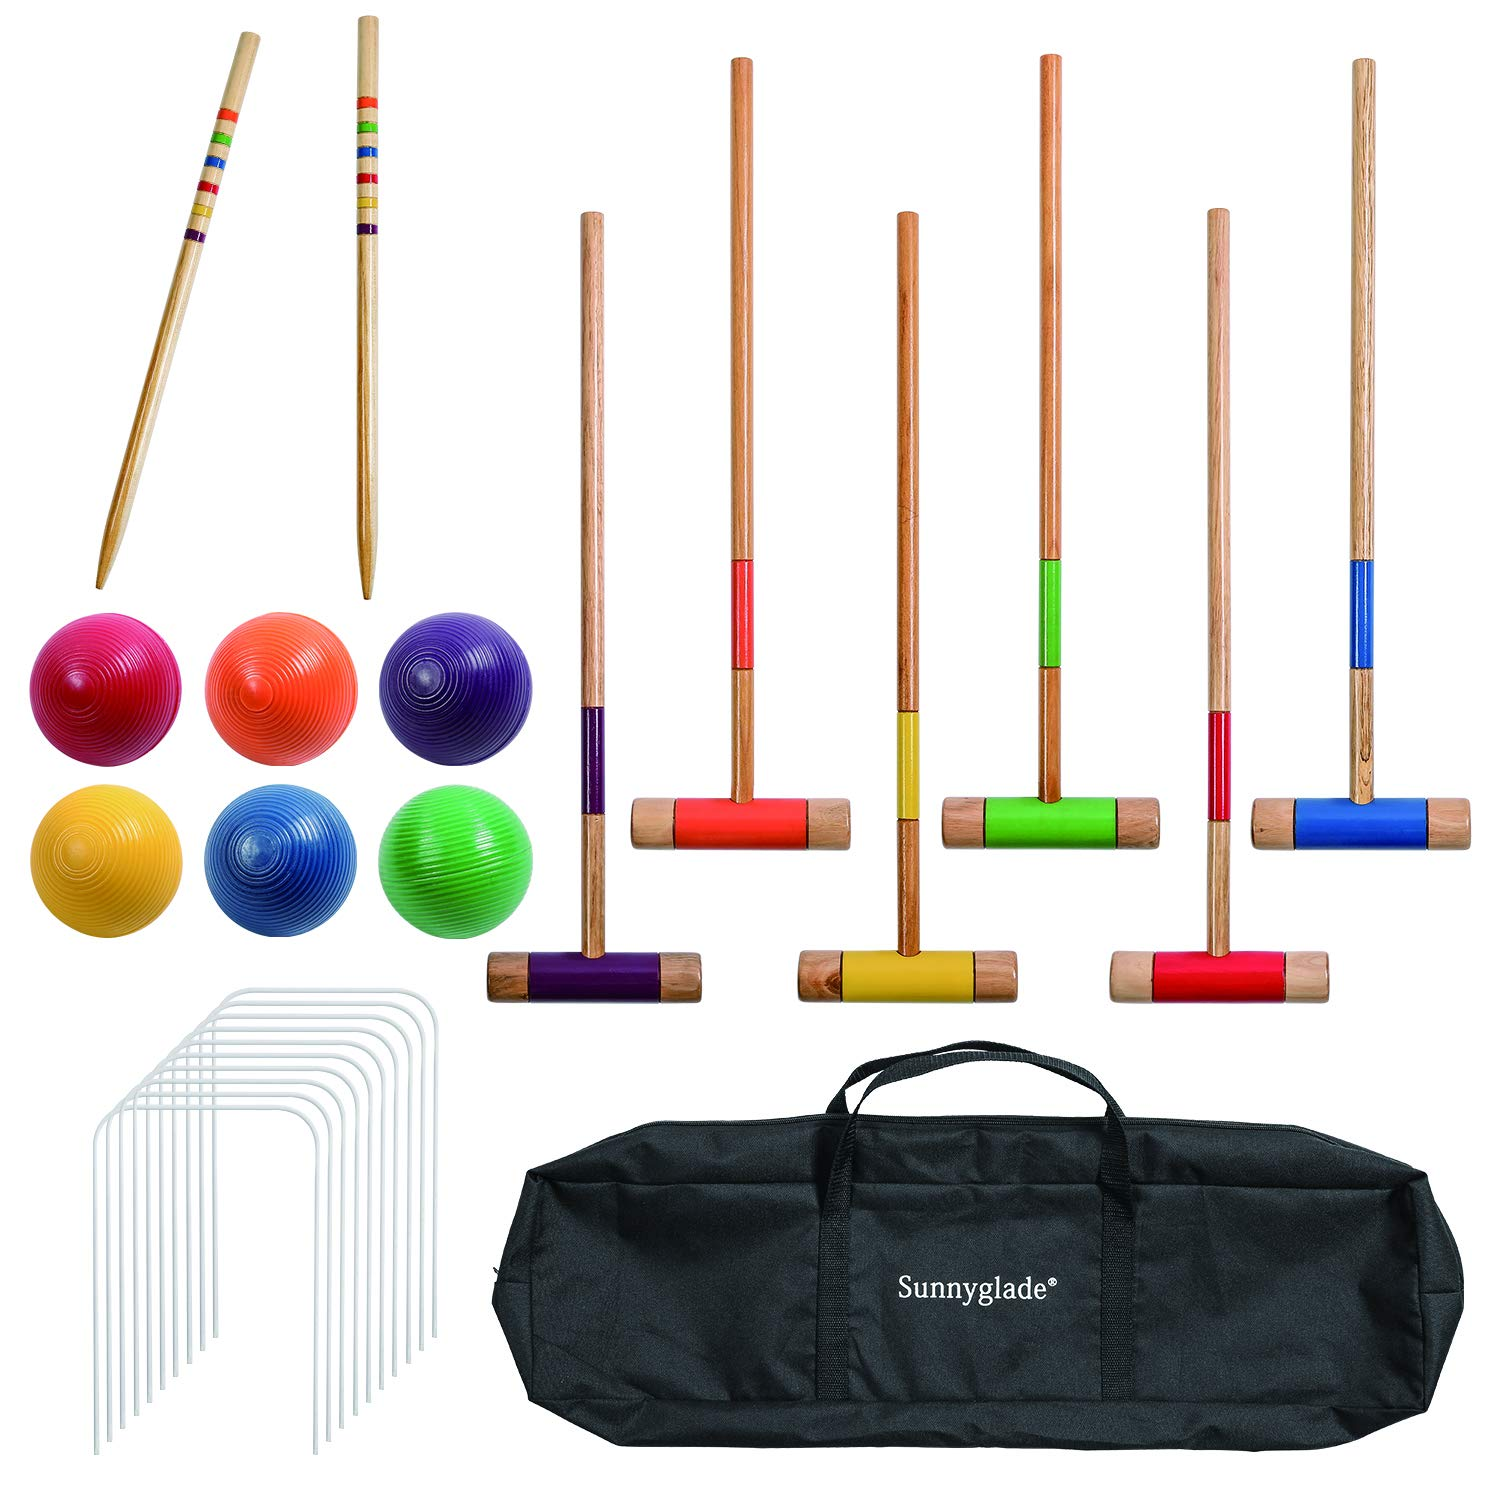 Sunnyglade 28inch Six Player Croquet Set with Classic Wooden Mallets, Colored Balls, Wickets, Stakes, Sturdy Carrying Bag by Sunnyglade (Image #1)